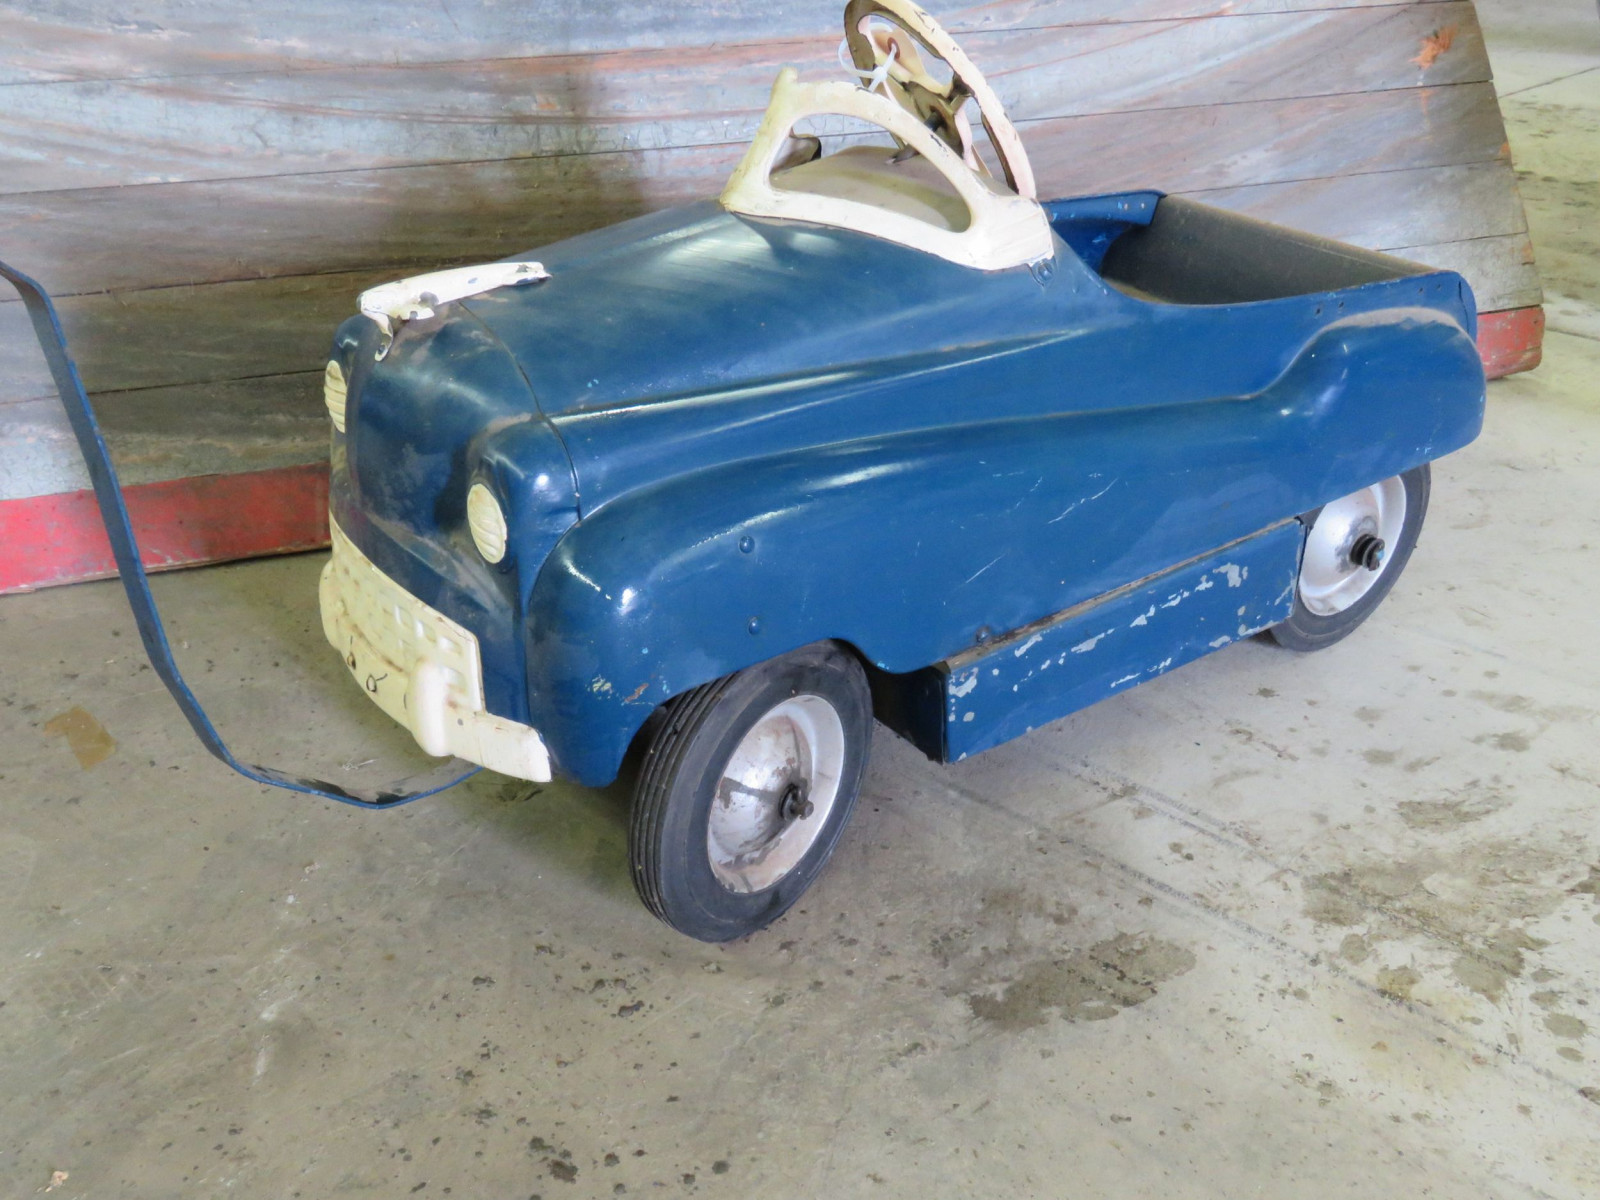 Vintage Murray Pedal Car - Image 1